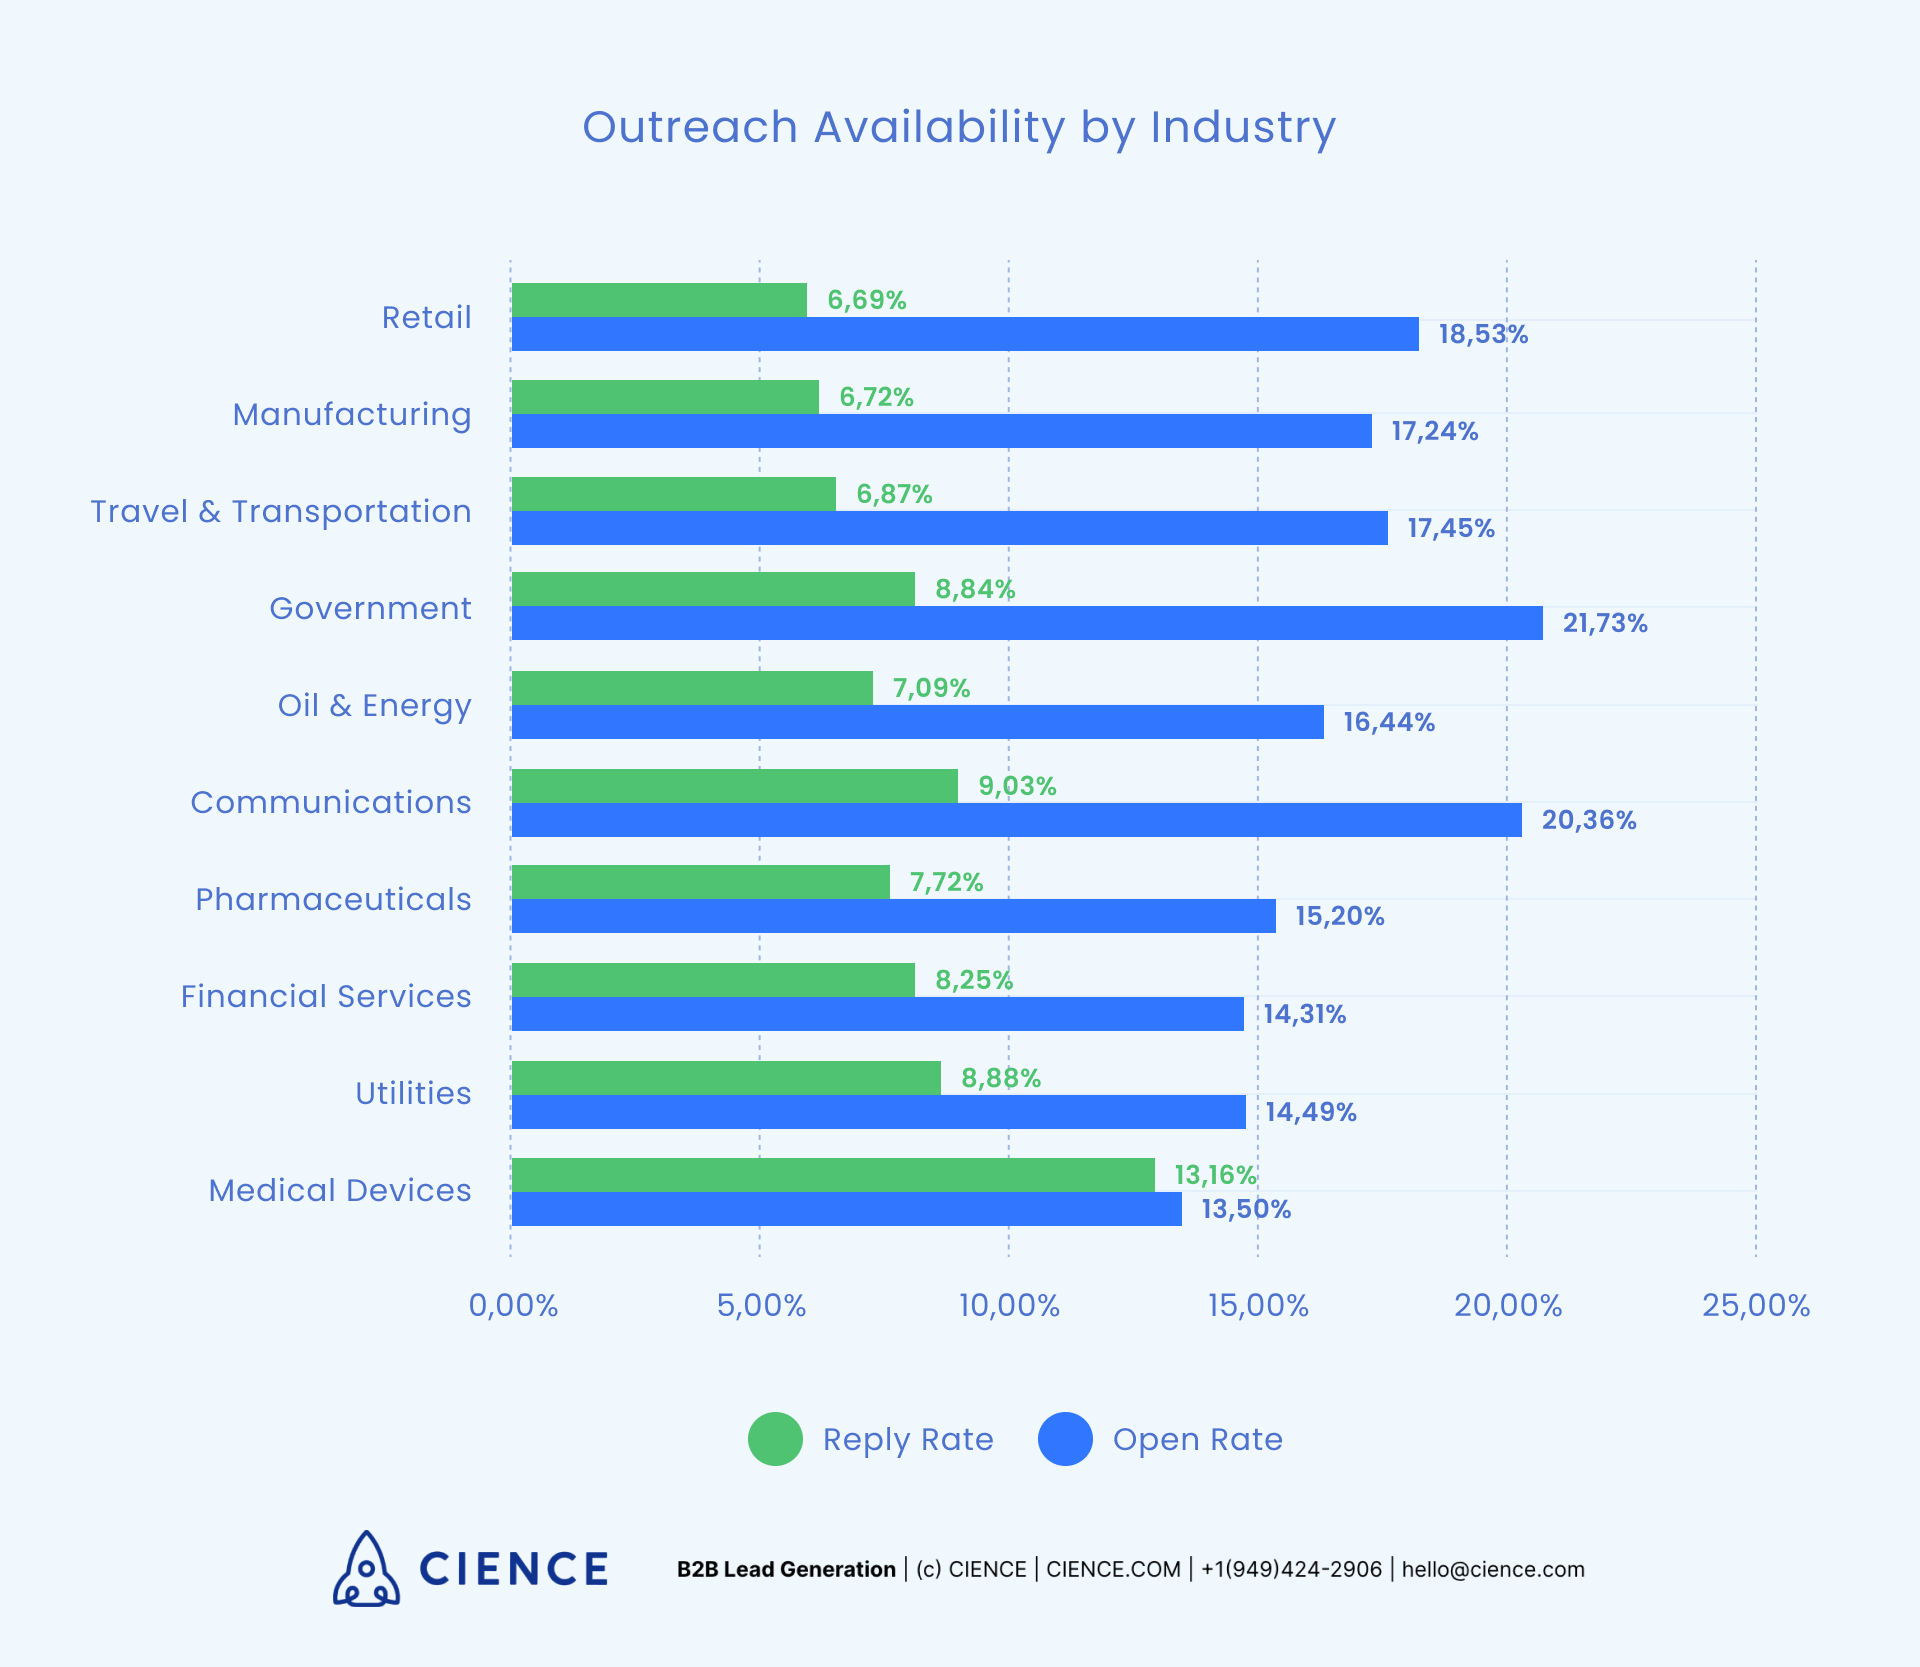 Most available industries to reach out to - email marketing